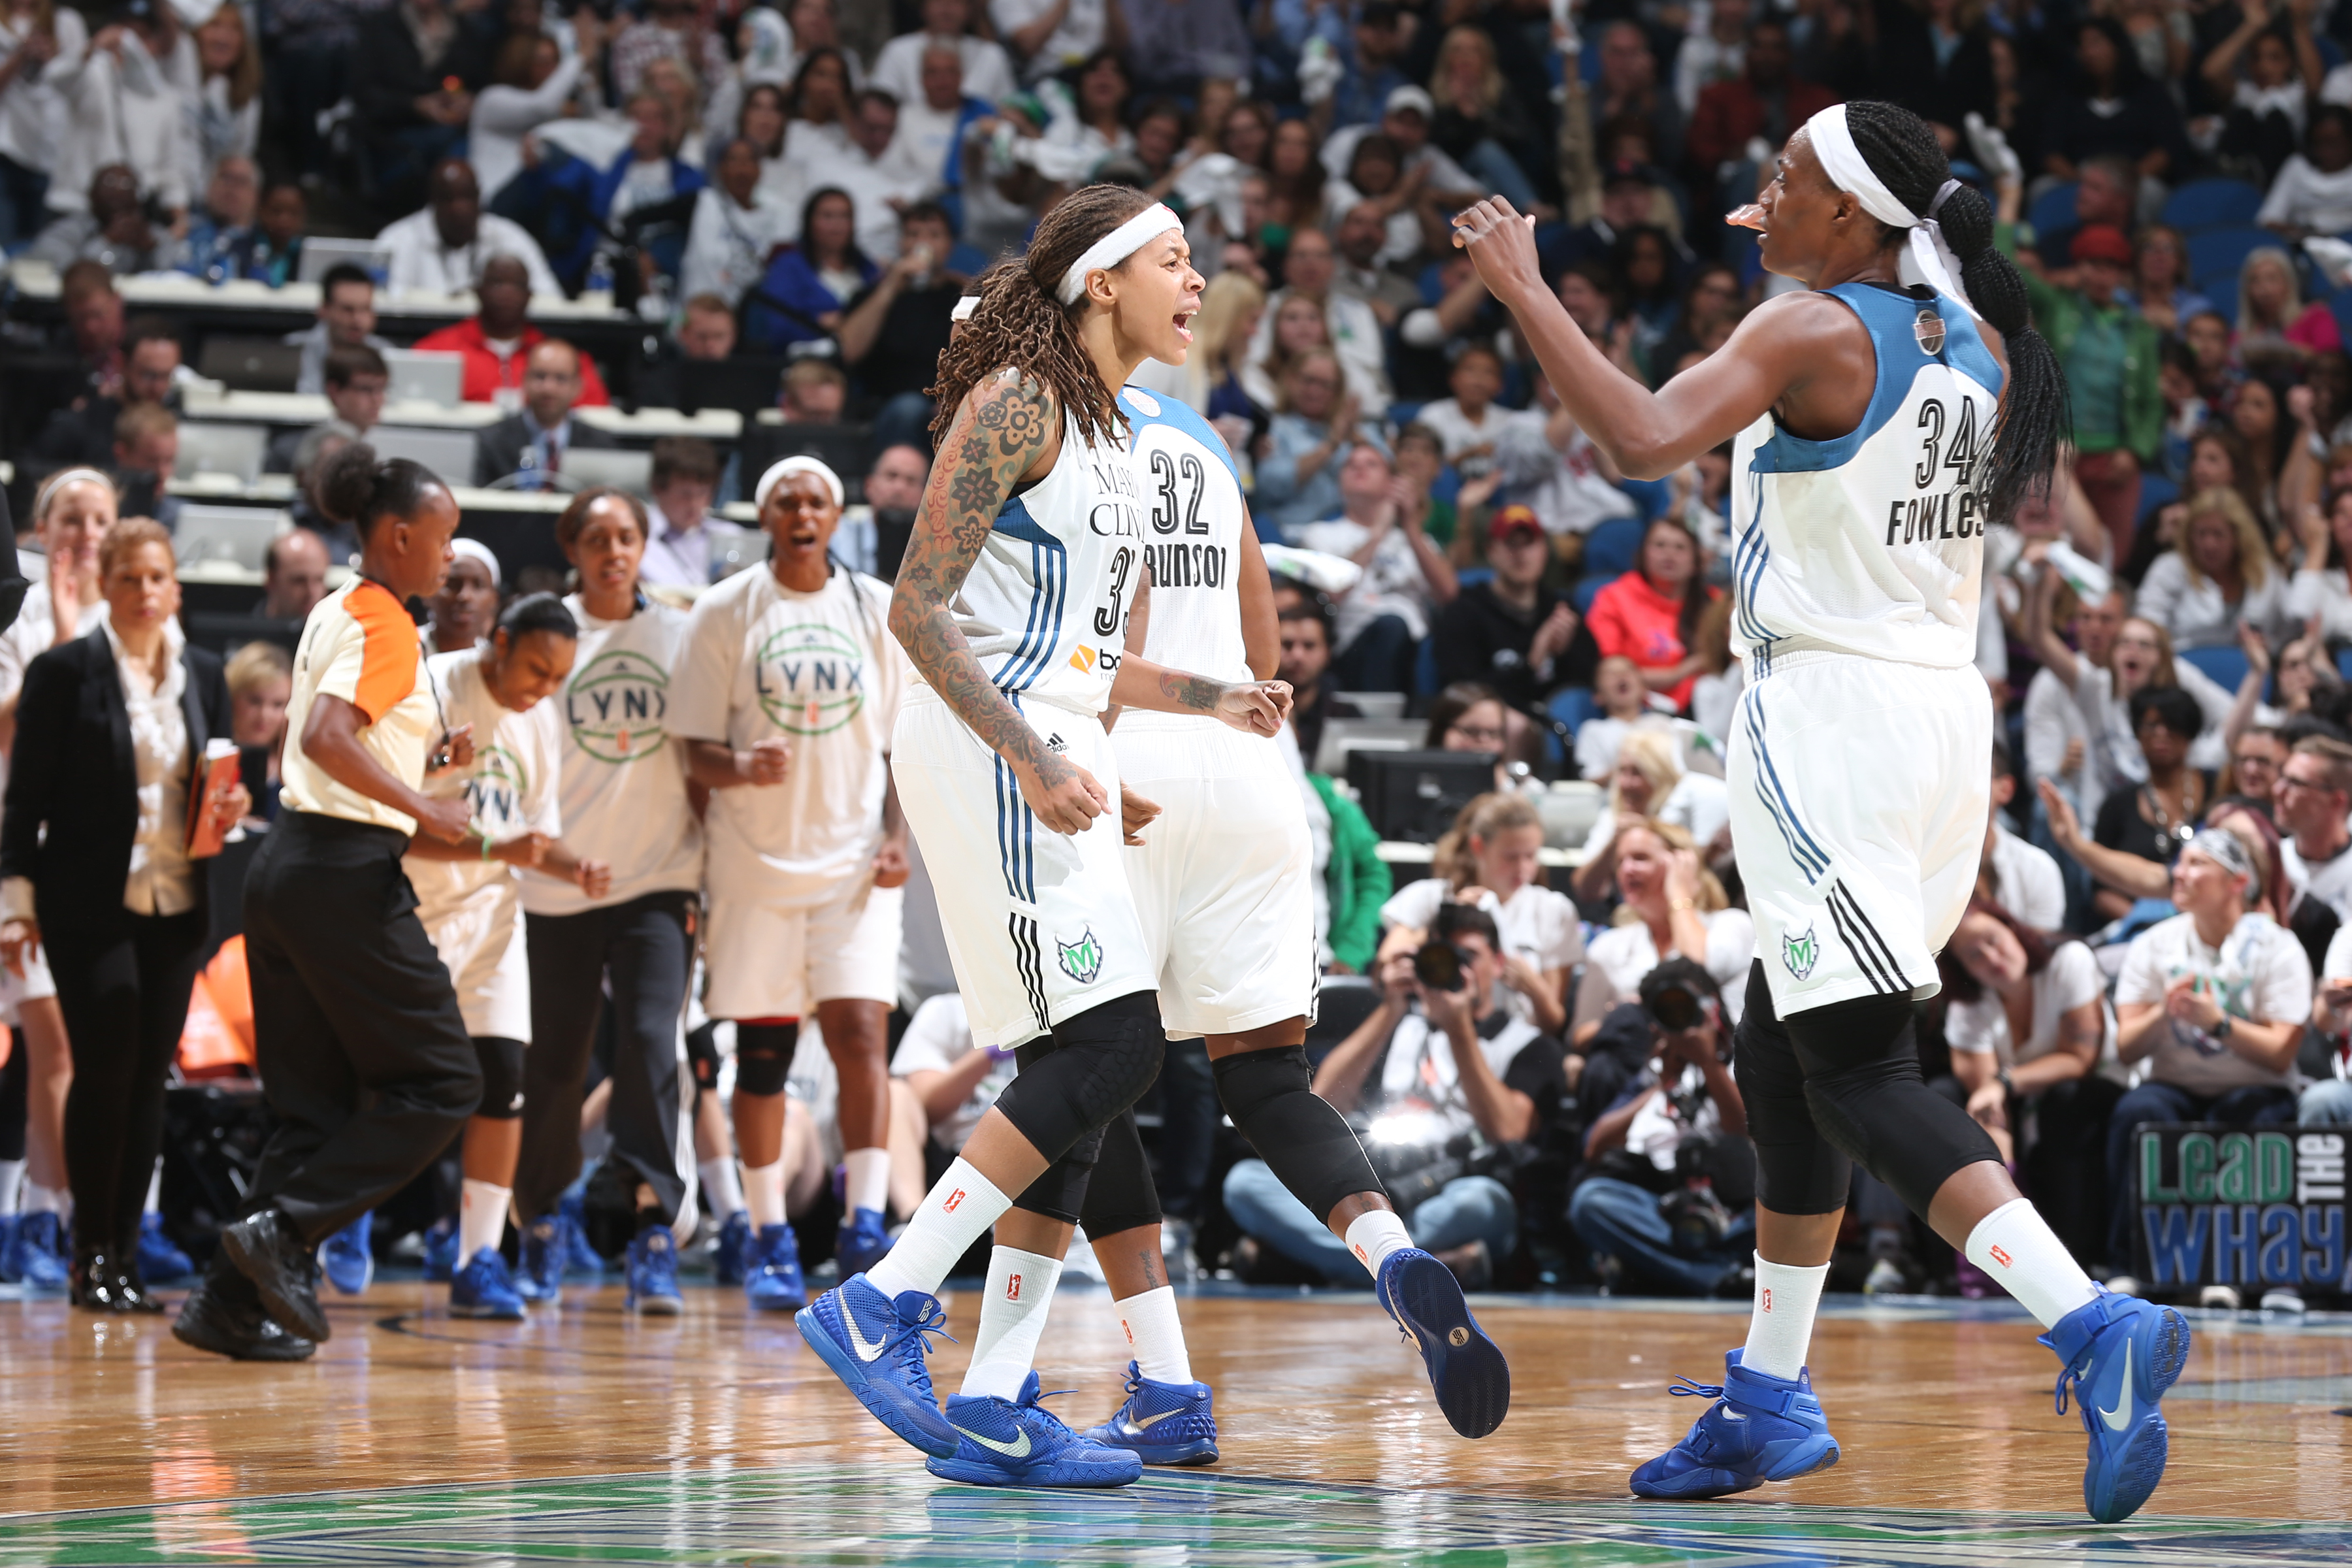 MINNEAPOLIS, MN - OCTOBER 14:  Seimone Augustus #33 of the Minnesota Lynx and Sylvia Fowles #34 of the Minnesota Lynx celebrate during Game Five of the 2015 WNBA Finals against the Indiana Fever on October 14, 2015 at Target Center in Minneapolis, Minnesota.  NOTE TO USER: User expressly acknowledges and agrees that, by downloading and or using this Photograph, user is consenting to the terms and conditions of the Getty Images License Agreement. Mandatory Copyright Notice: Copyright 2015 NBAE (Photo by Jordan Johnson/NBAE via Getty Images)